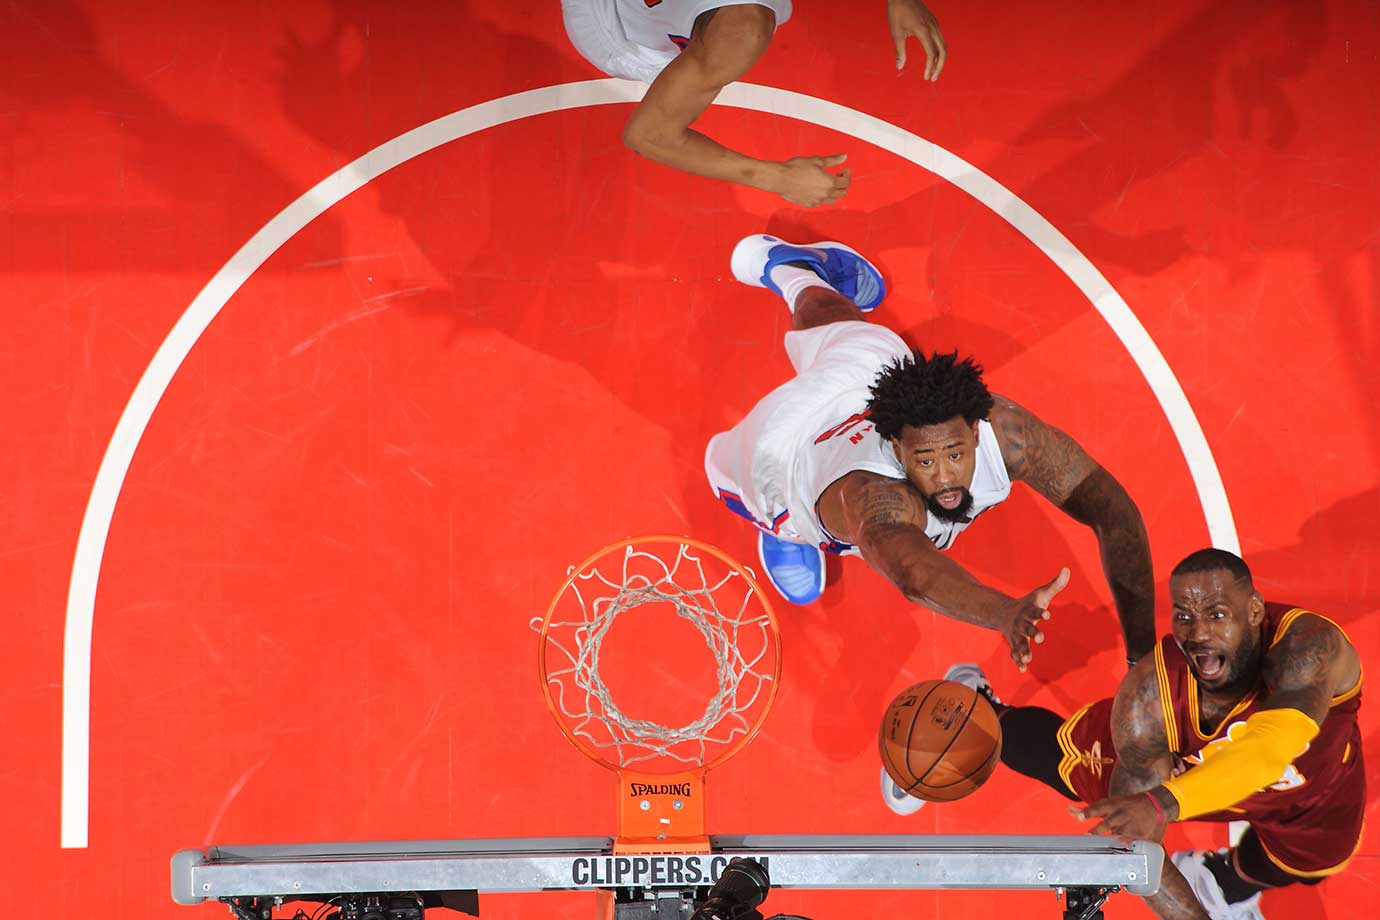 LeBron James hooks a shot against the defense of DeAndre Jordan of the Clippers.